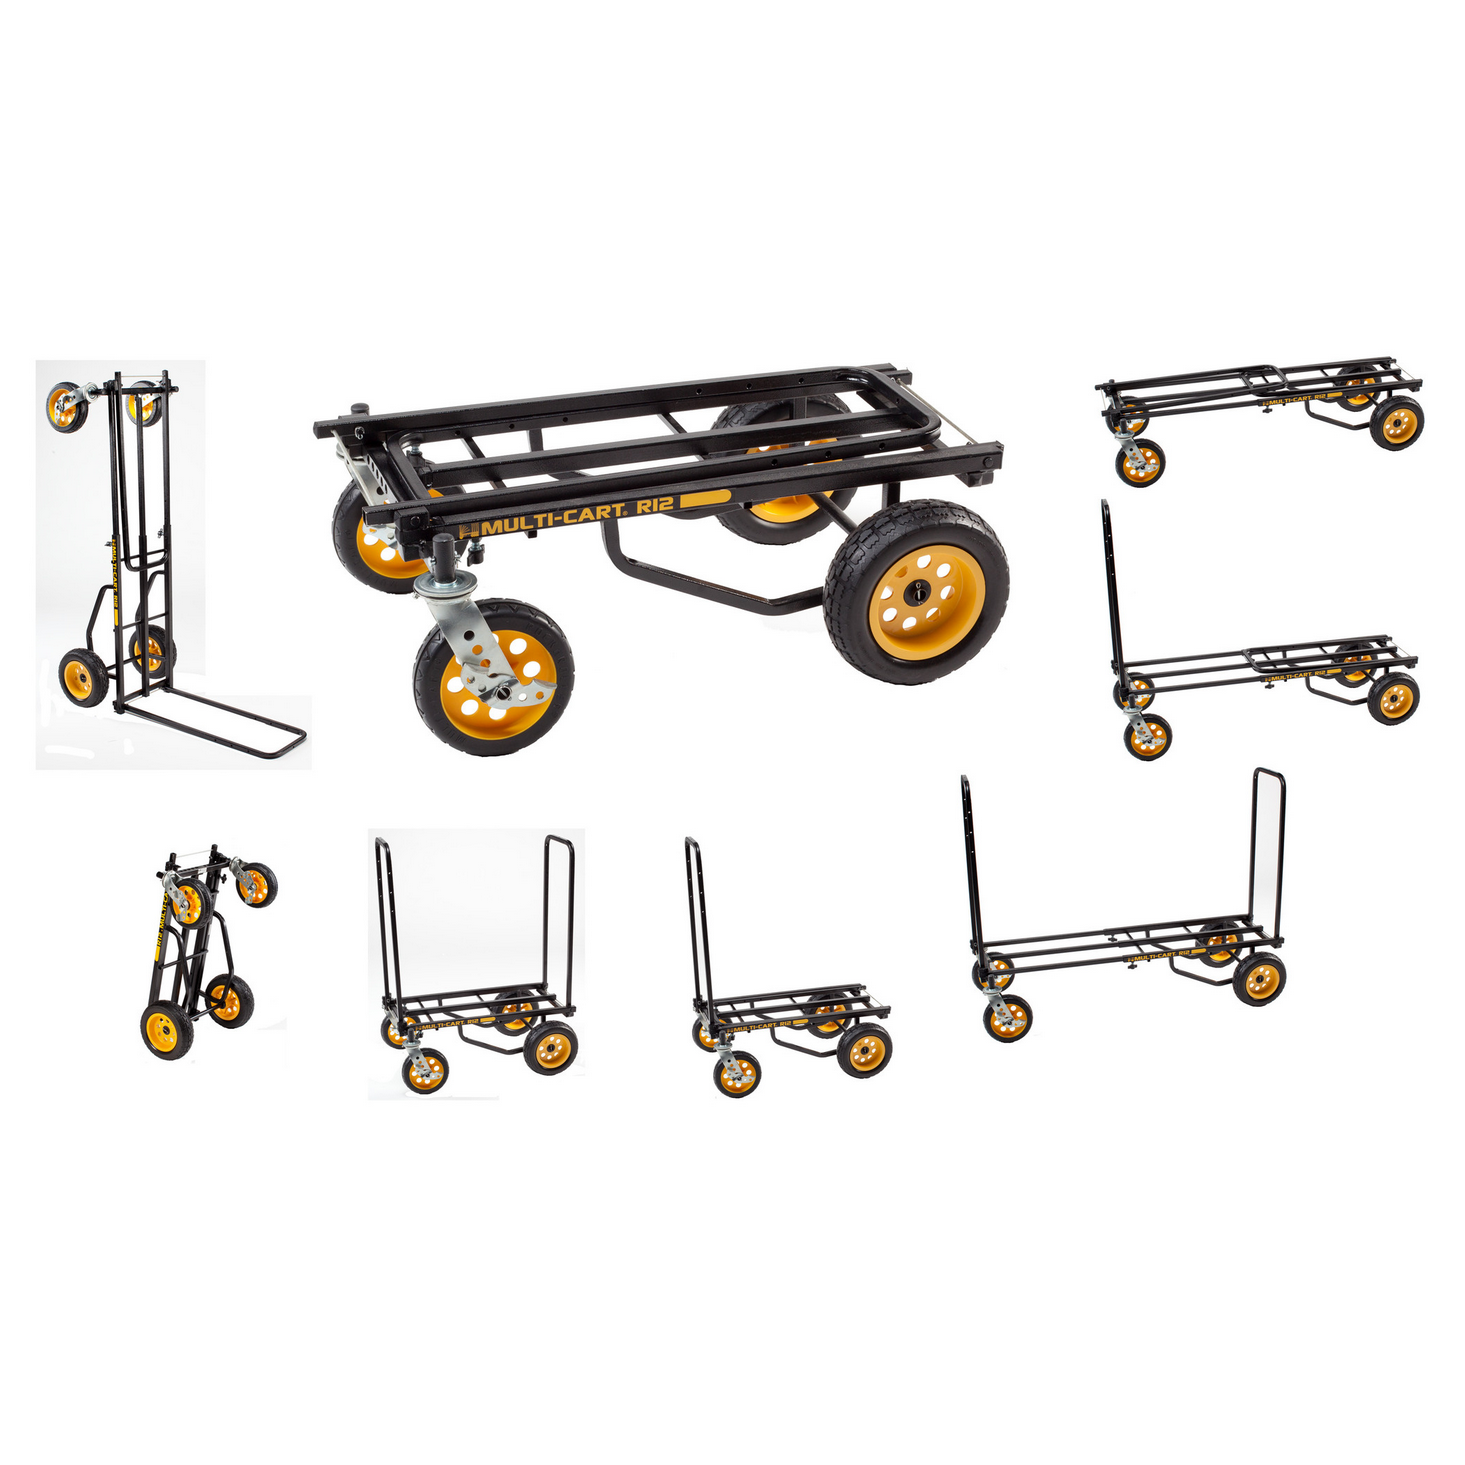 Amazon.com: Rock and Roller Multi-Cart, Model R12: Musical Instruments